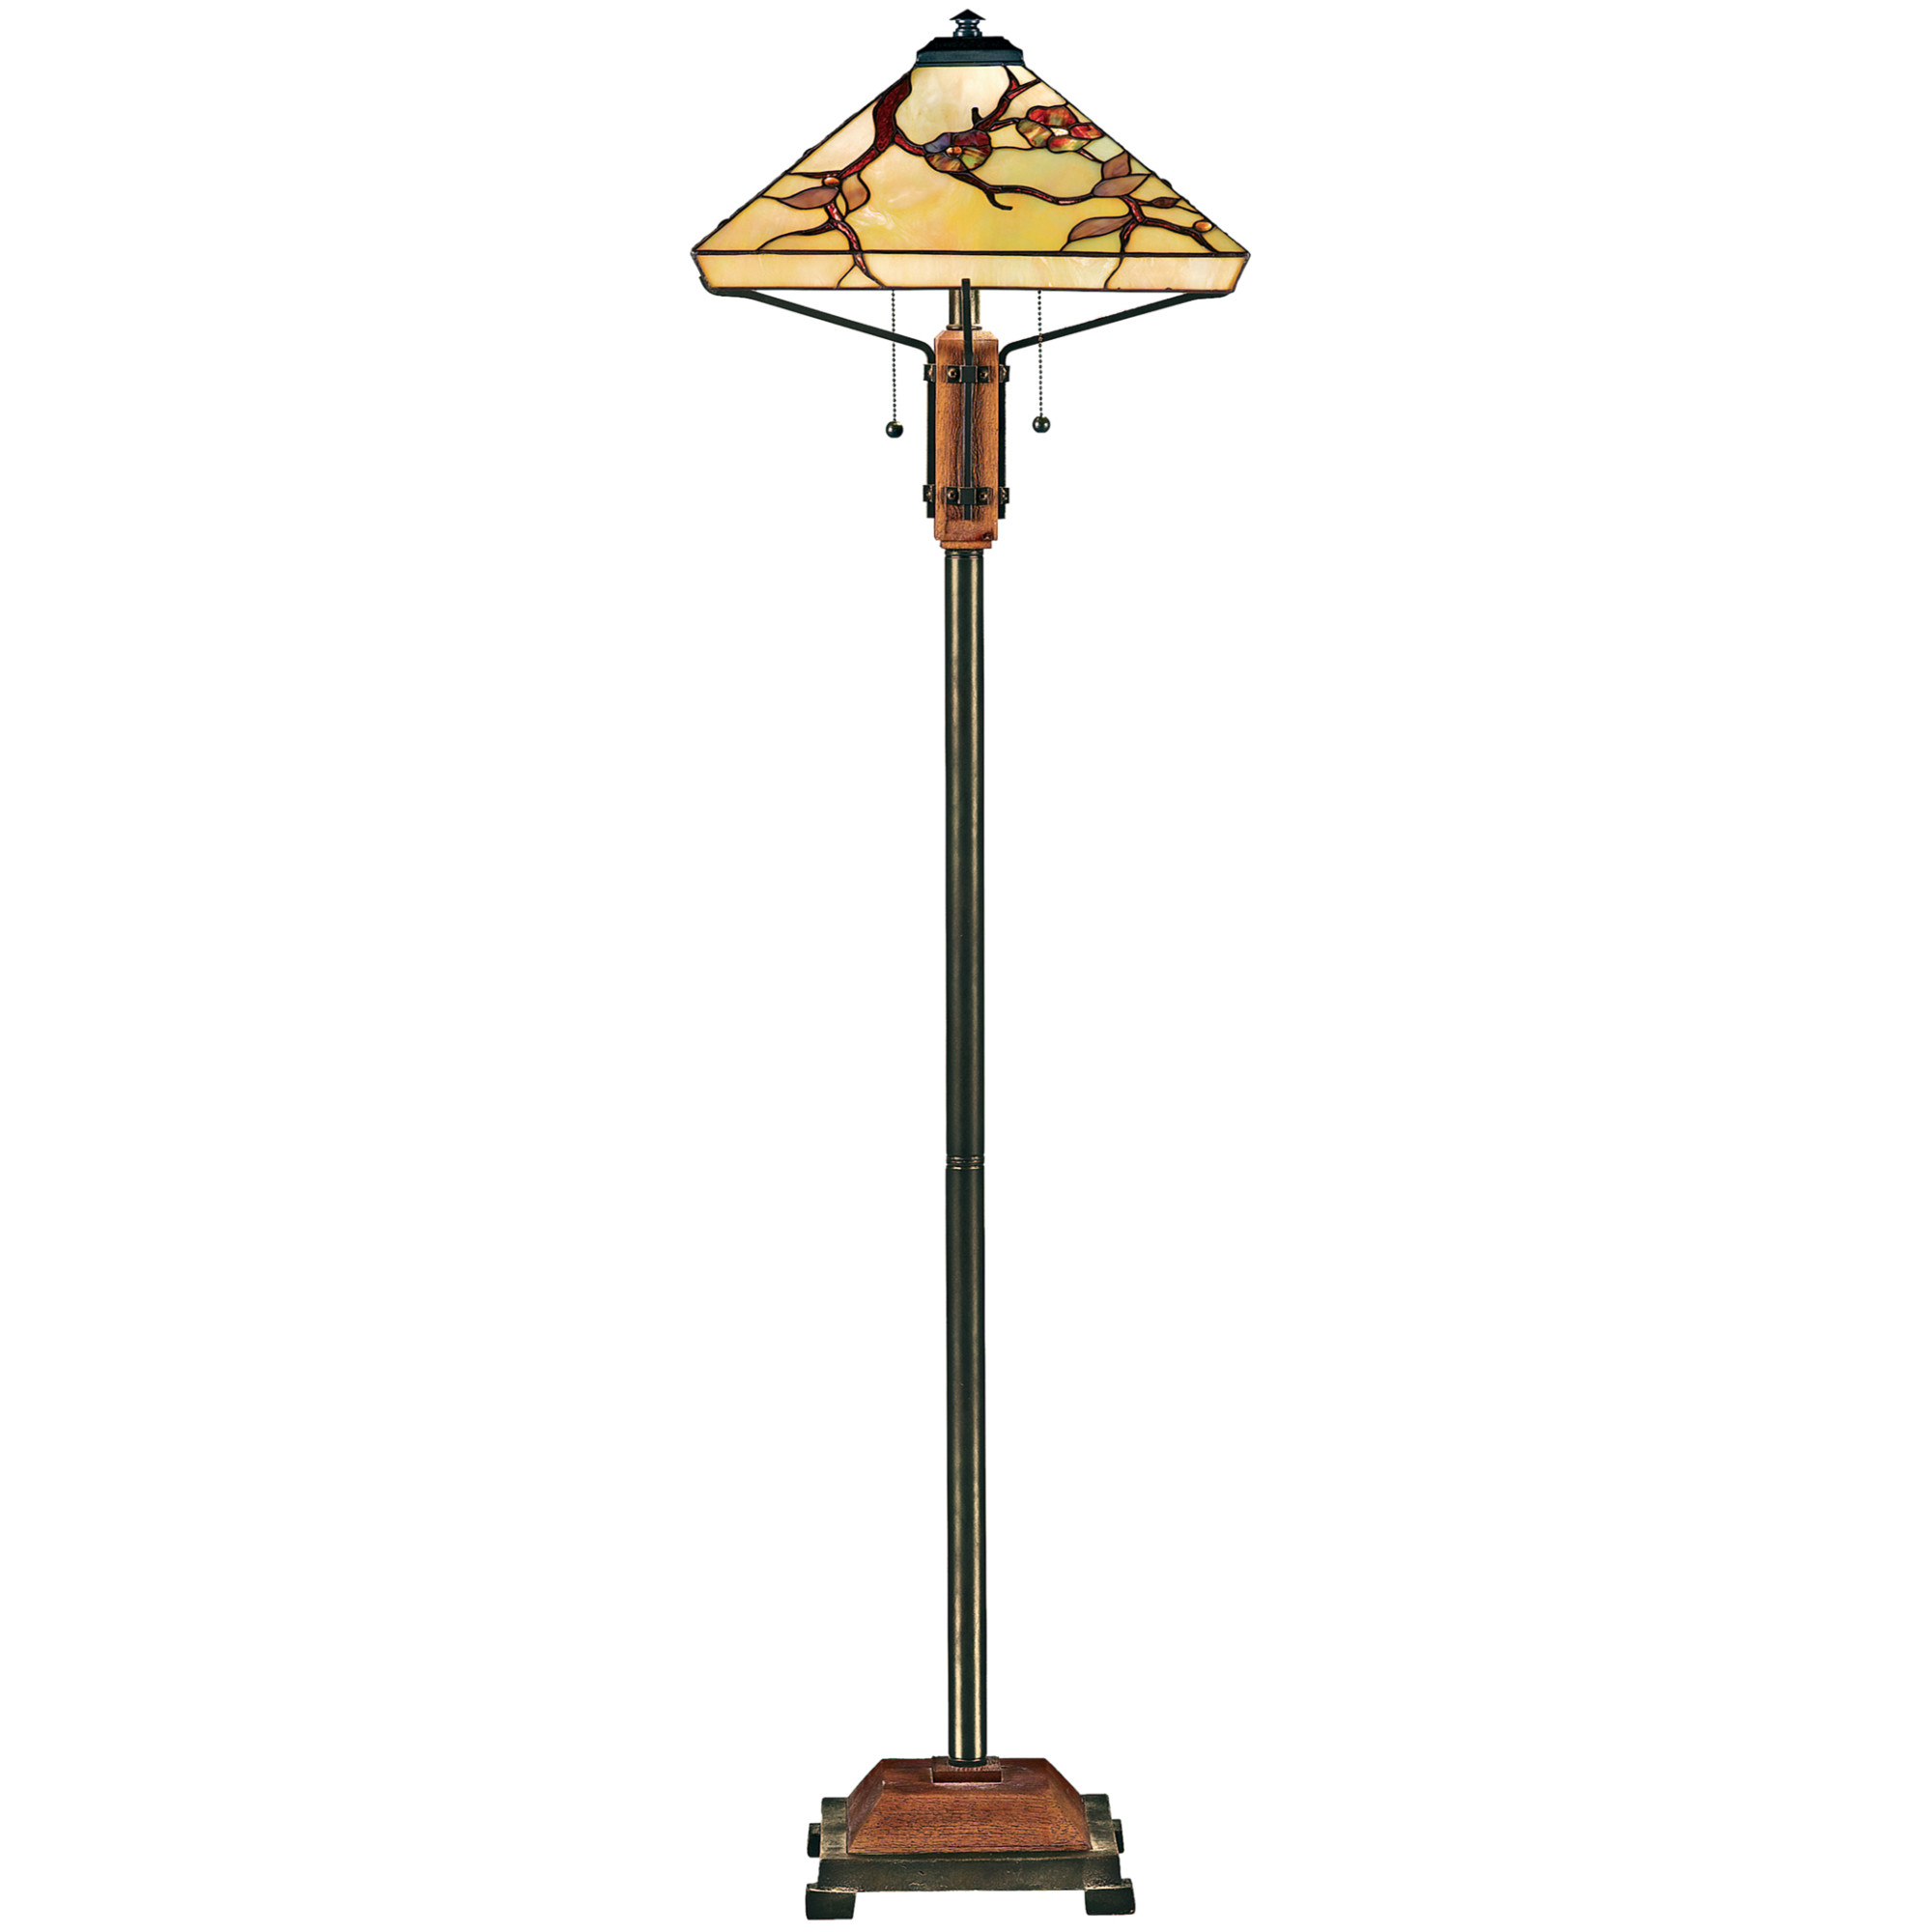 Details About Quoizel Tf9404 Tiffany 2 Light 60 Tall Floor Lamp Brass